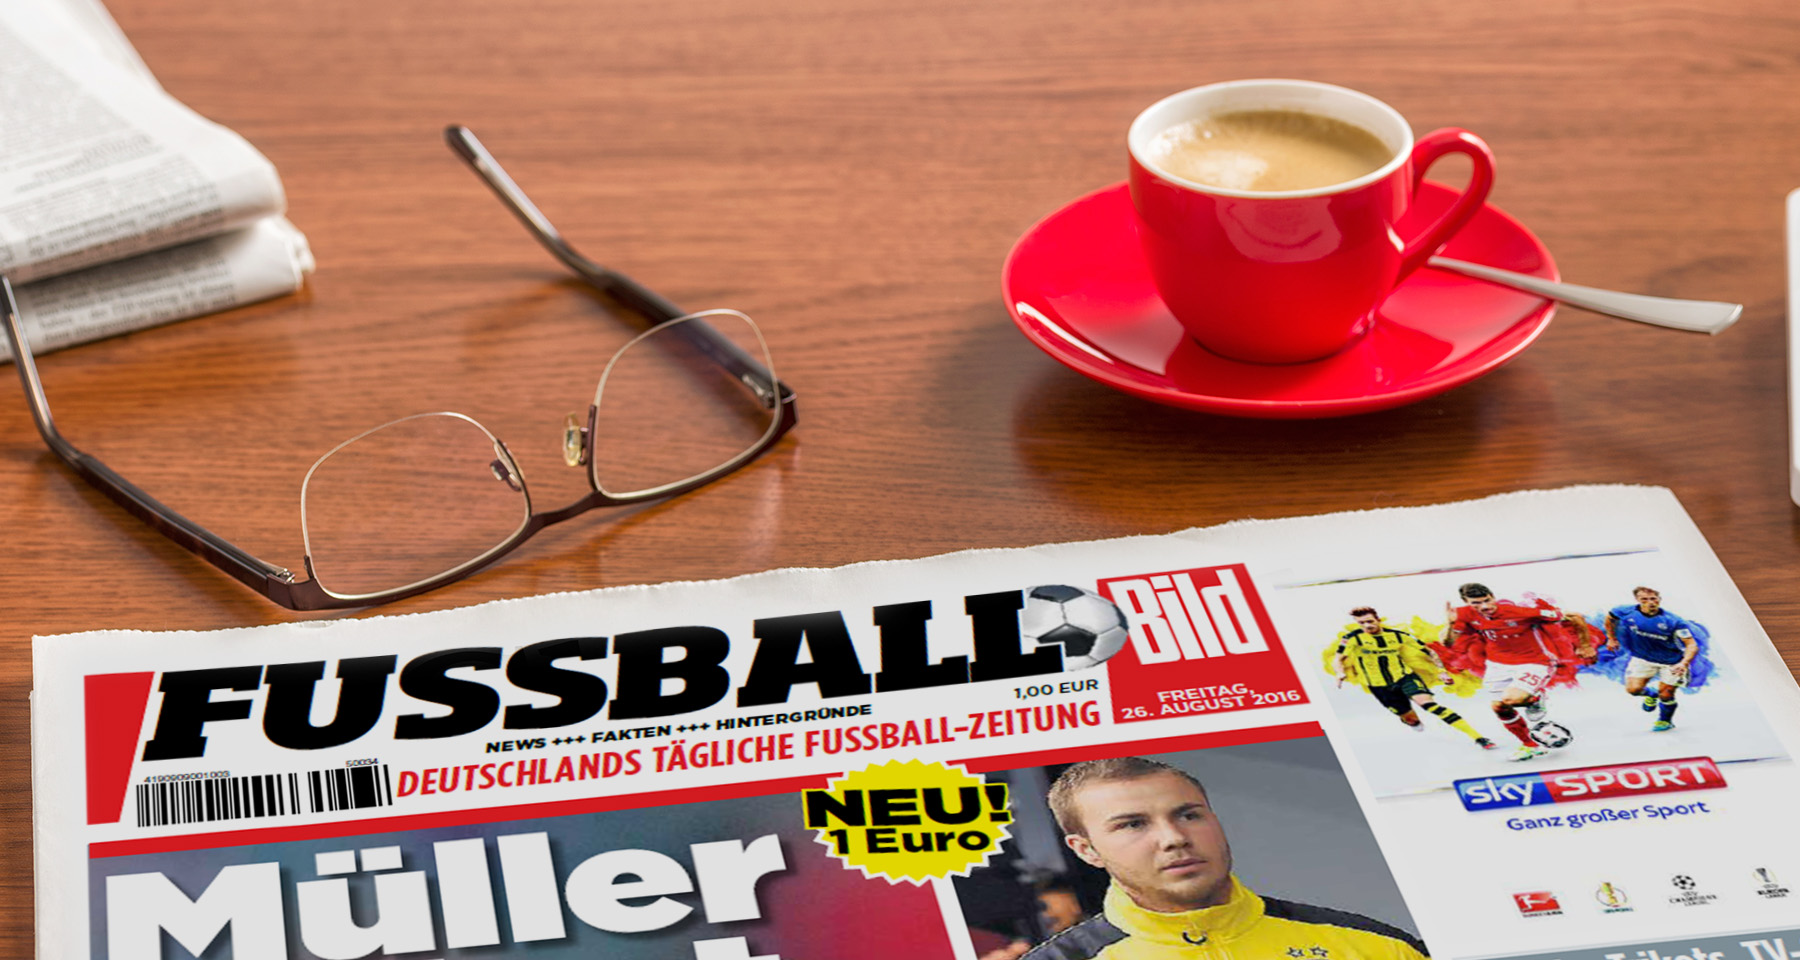 BILD tests daily soccer tabloid with regional audience